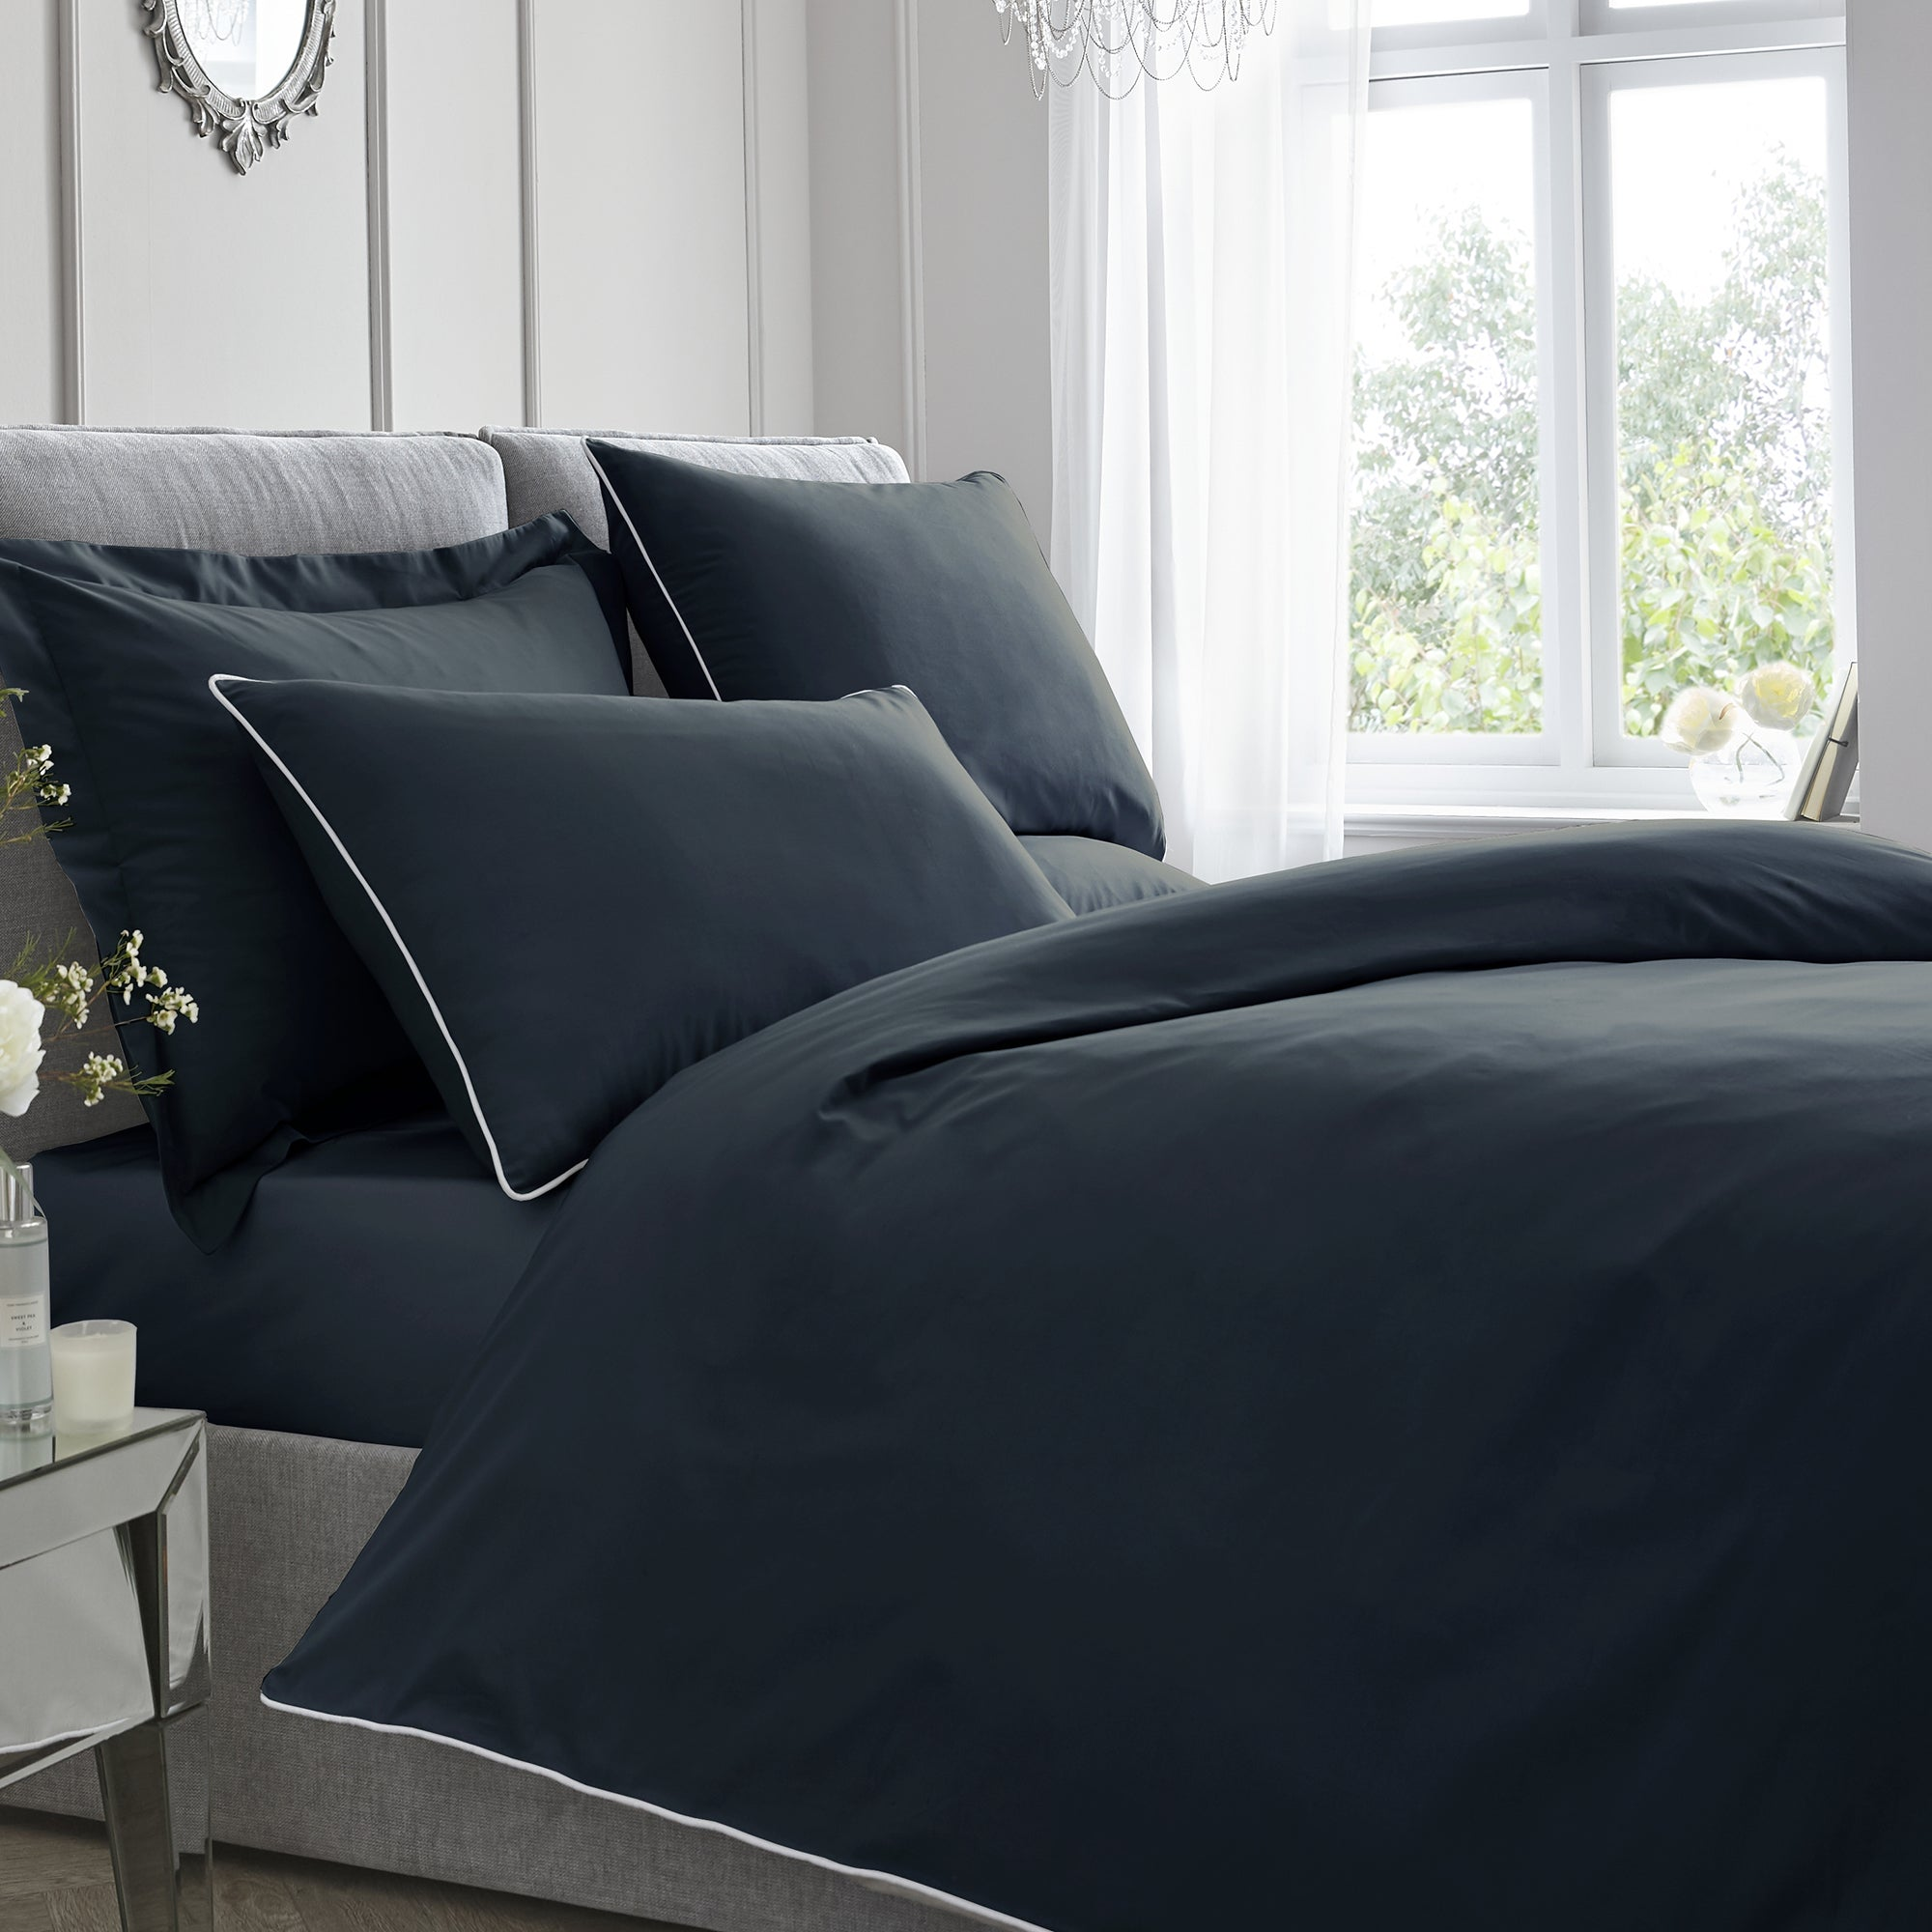 Plain Dye - 200TC Piped Duvet Cover Set - in Navy by Appletree Boutique